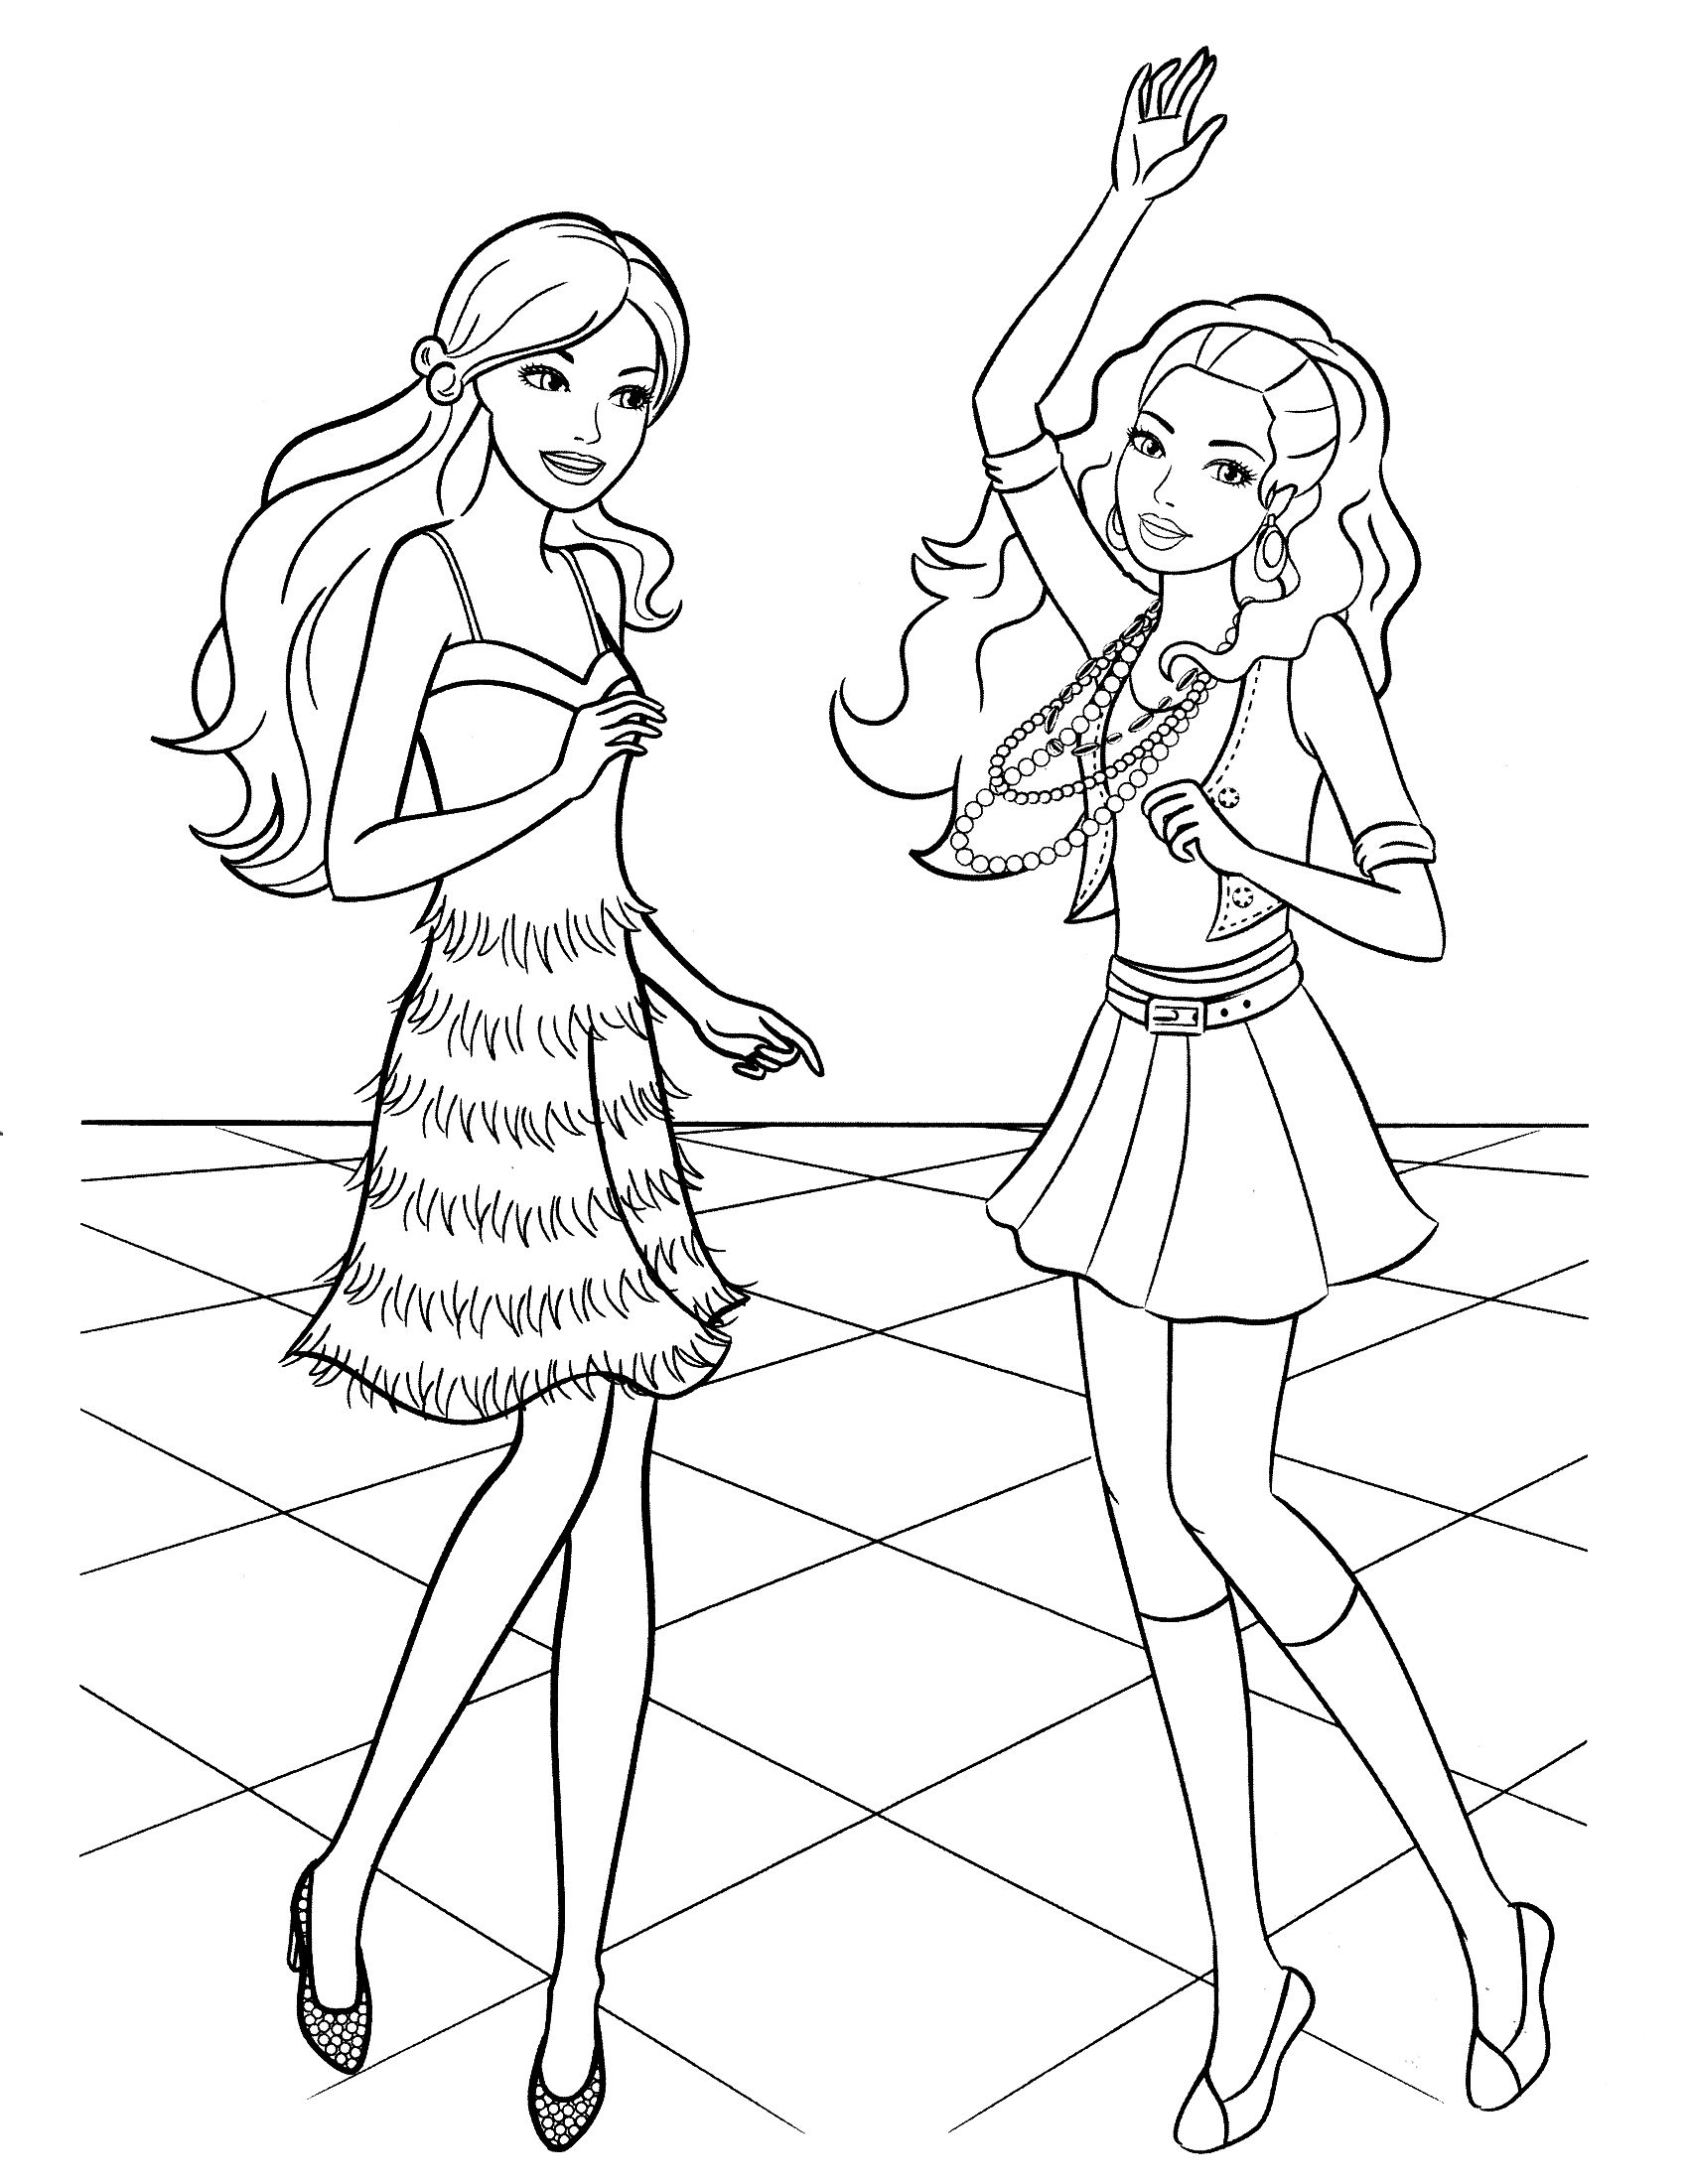 Barbie coloring pages coloring kifest k coloring for Fashion barbie coloring pages